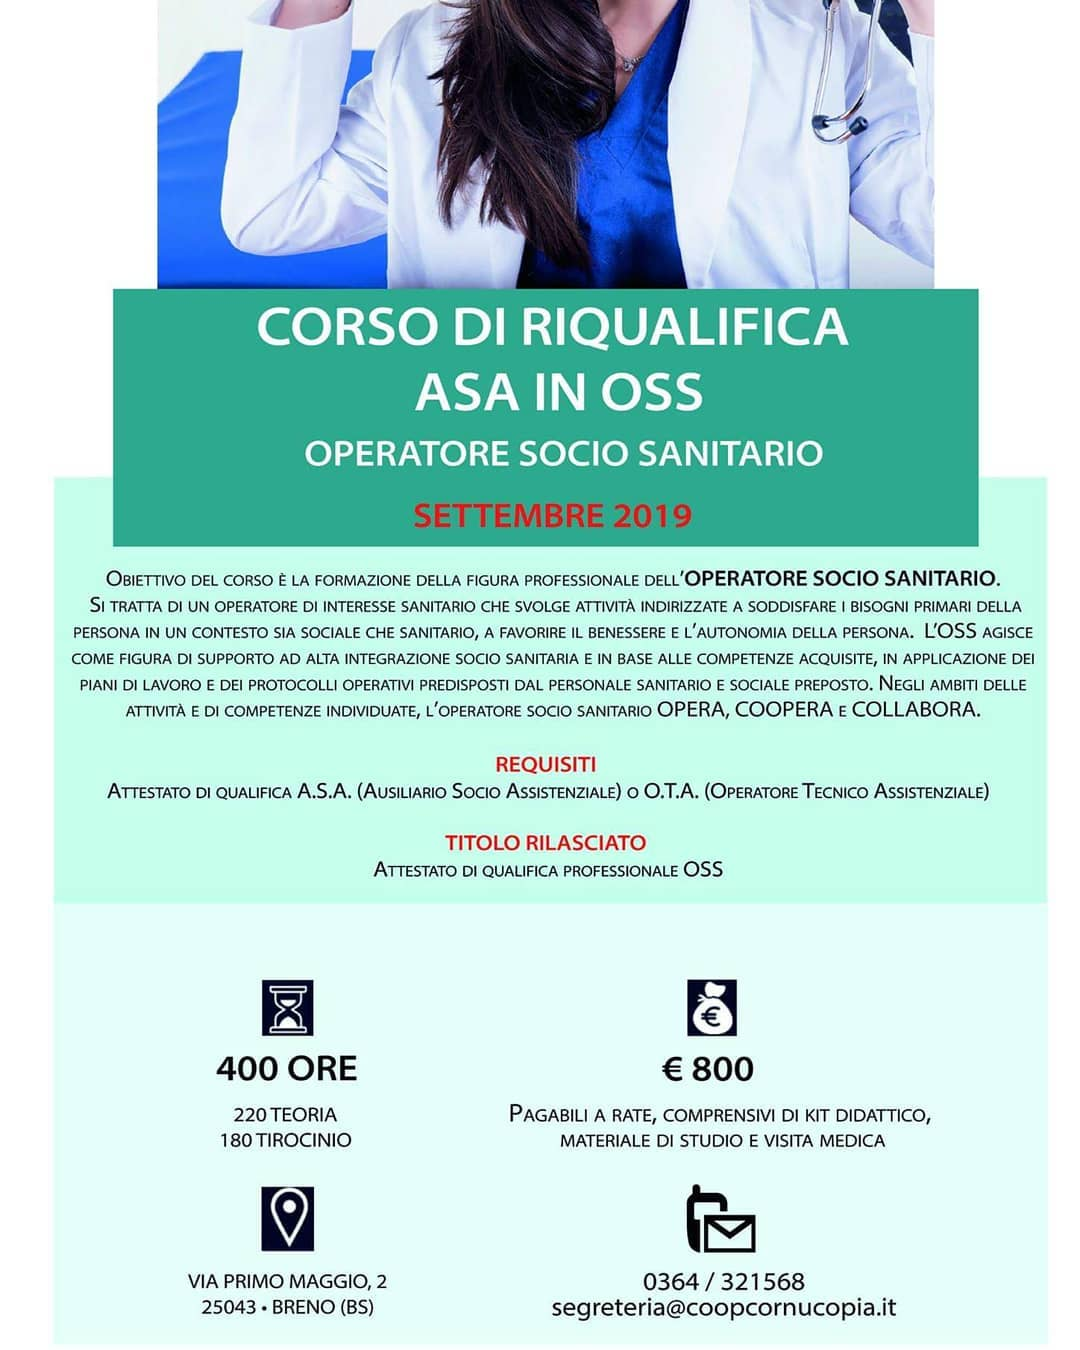 Corso riqualifica a.s.a on o.s.s.